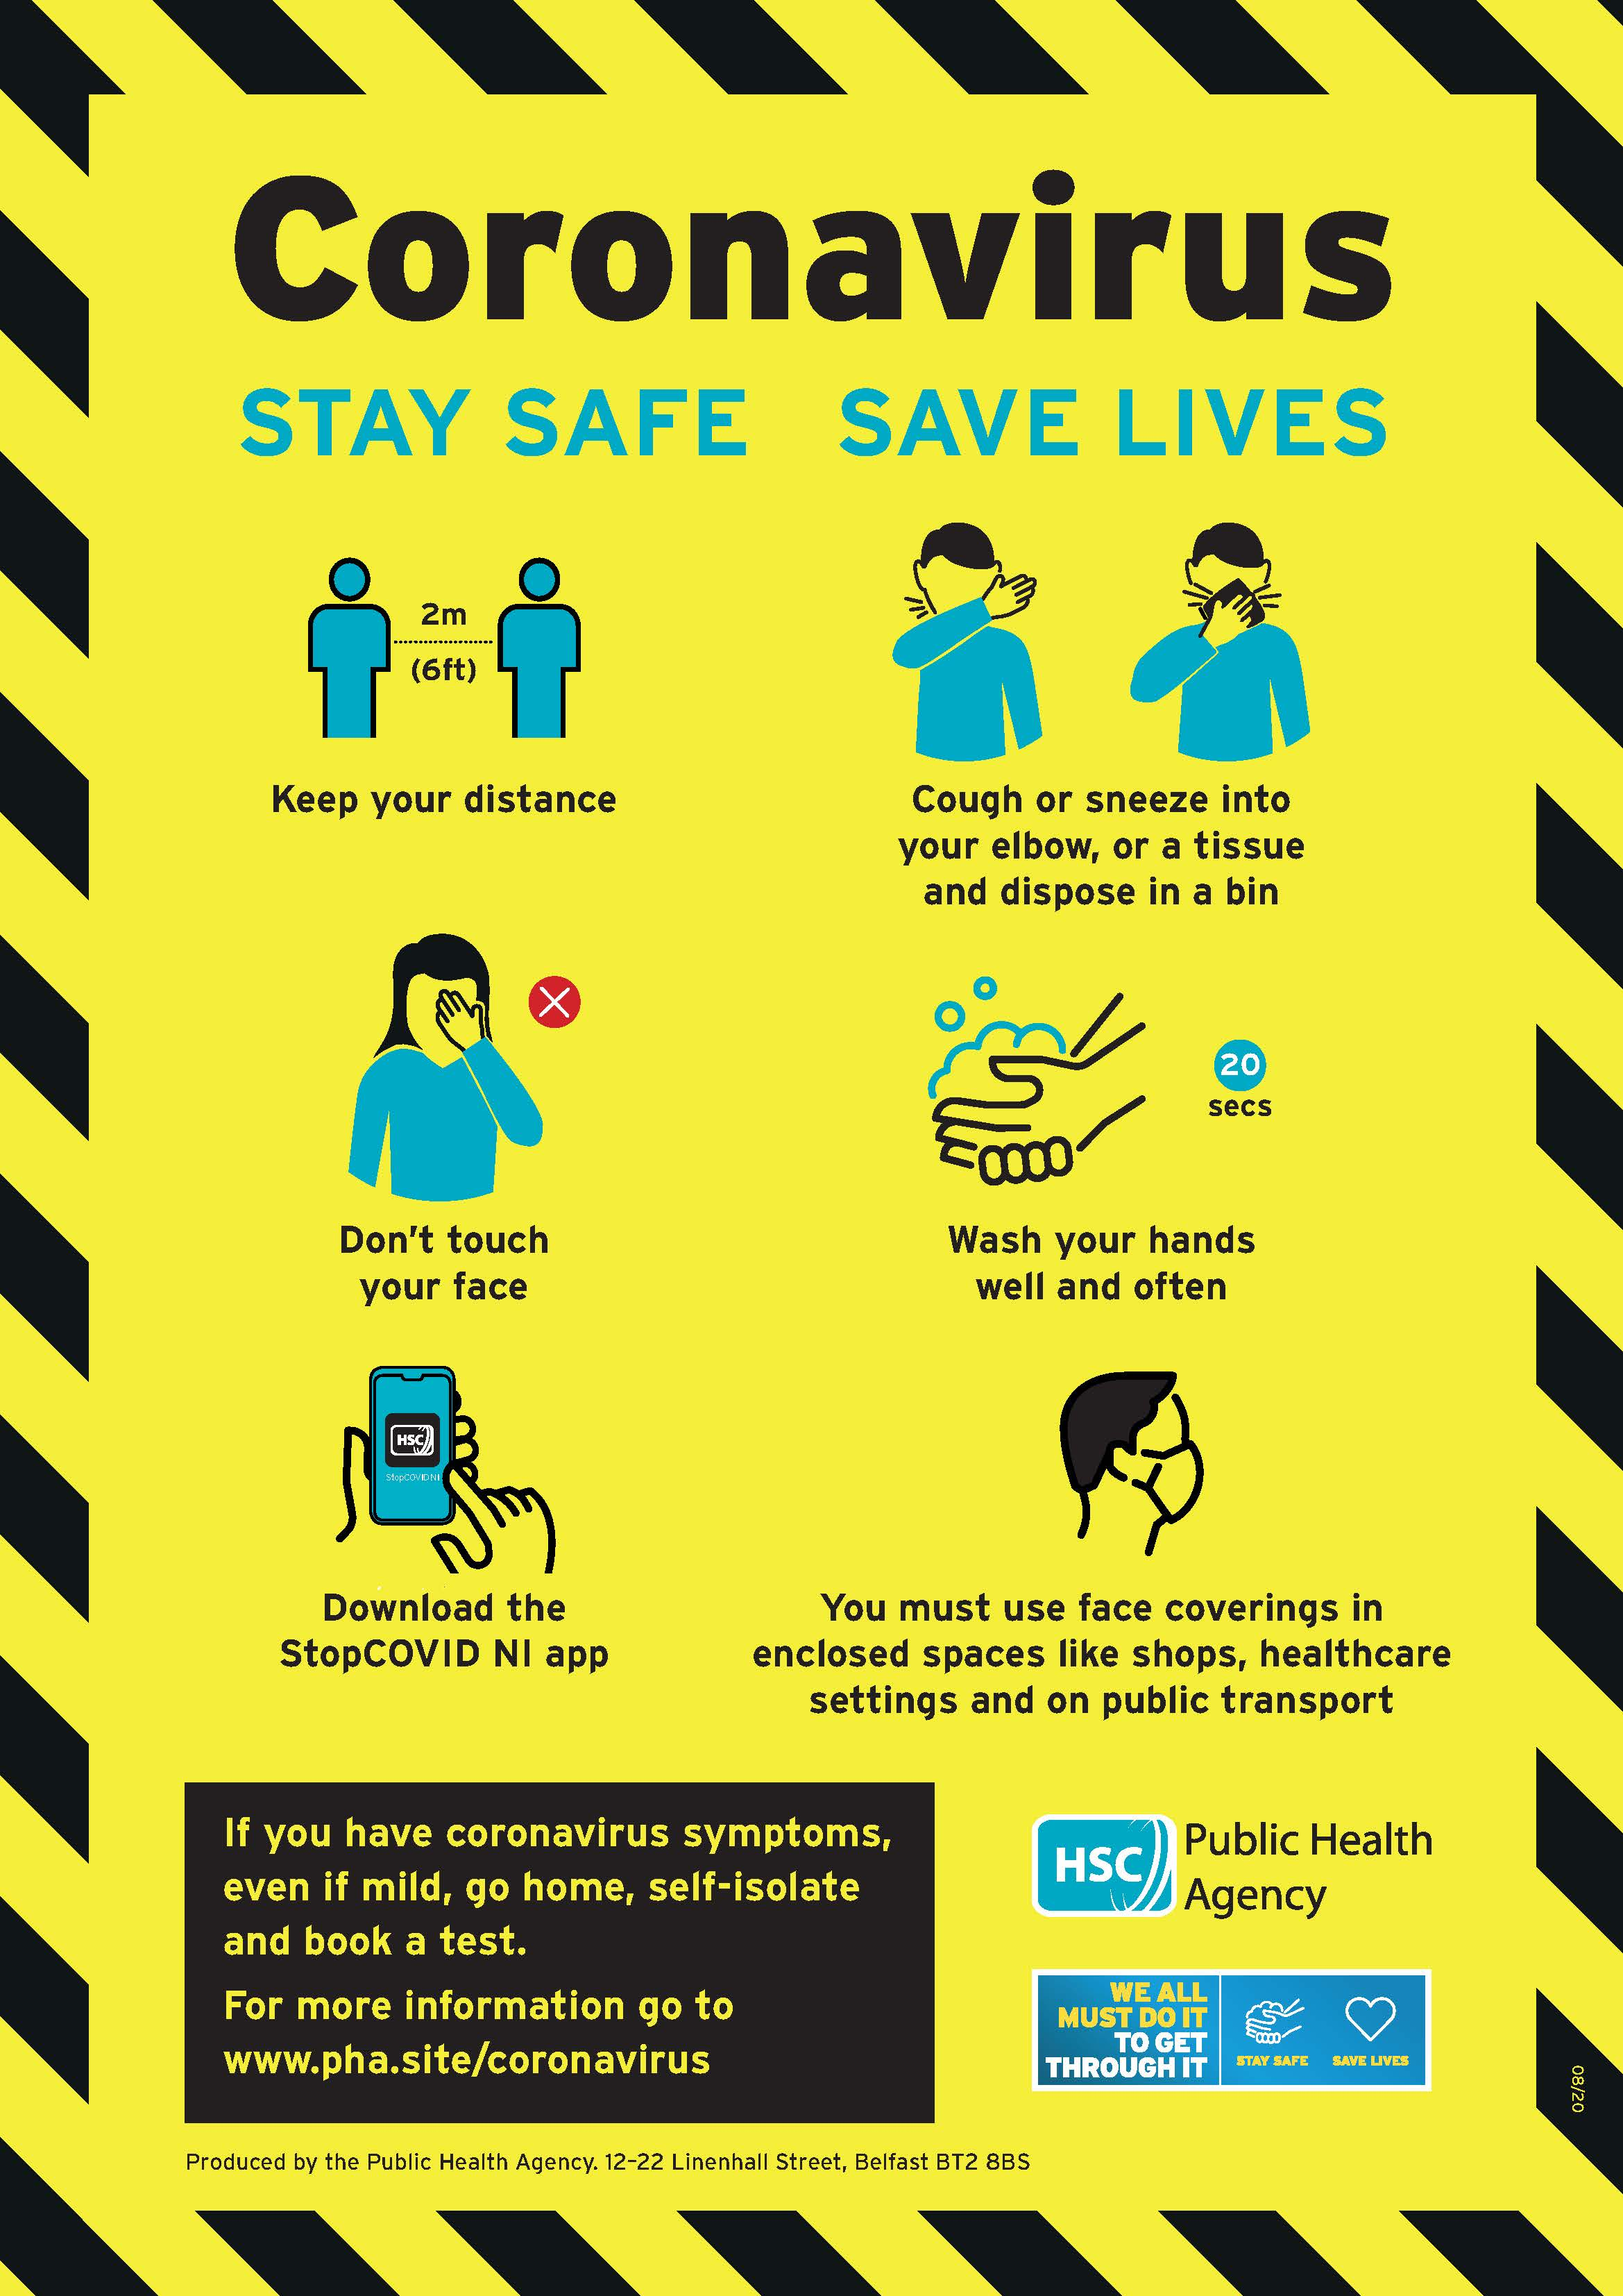 Stay safe save lives